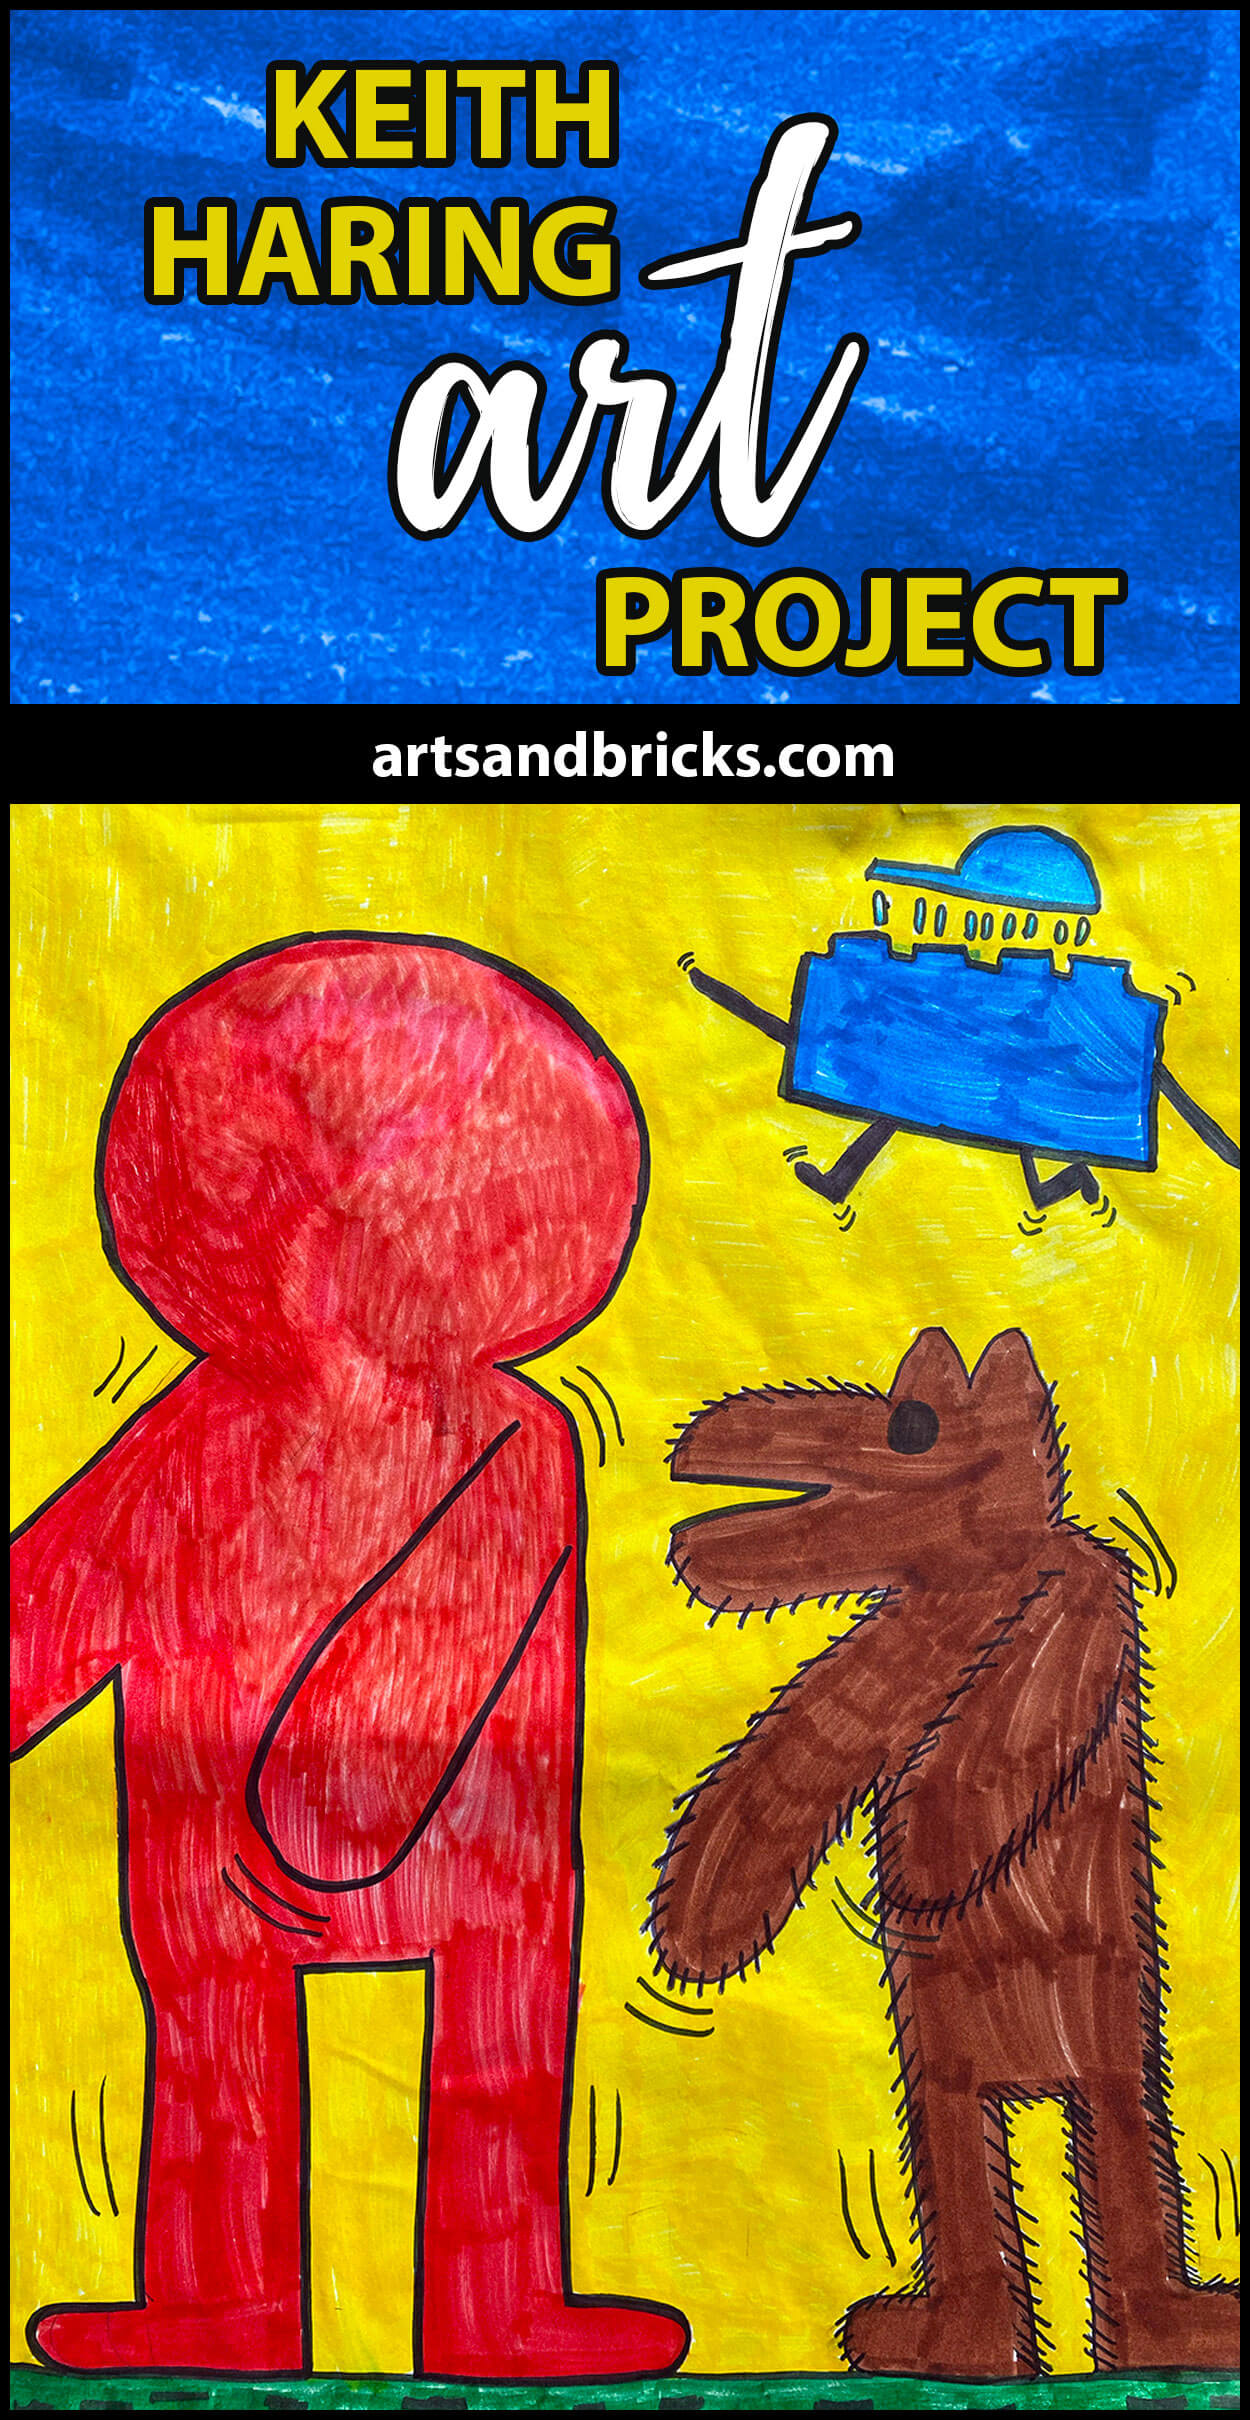 Explore this idea on how to make your own Keith Haring-inspired Kids Art Project. Learn what characteristics make Keith's work unique -- like motion lines, bright solid colors and cartoon styled faceless people. Our final artwork includes our very own The Hairy Dog, The Dancing Boy and The Blue Lego Brick. #keithharing #art #artclassroom #lego